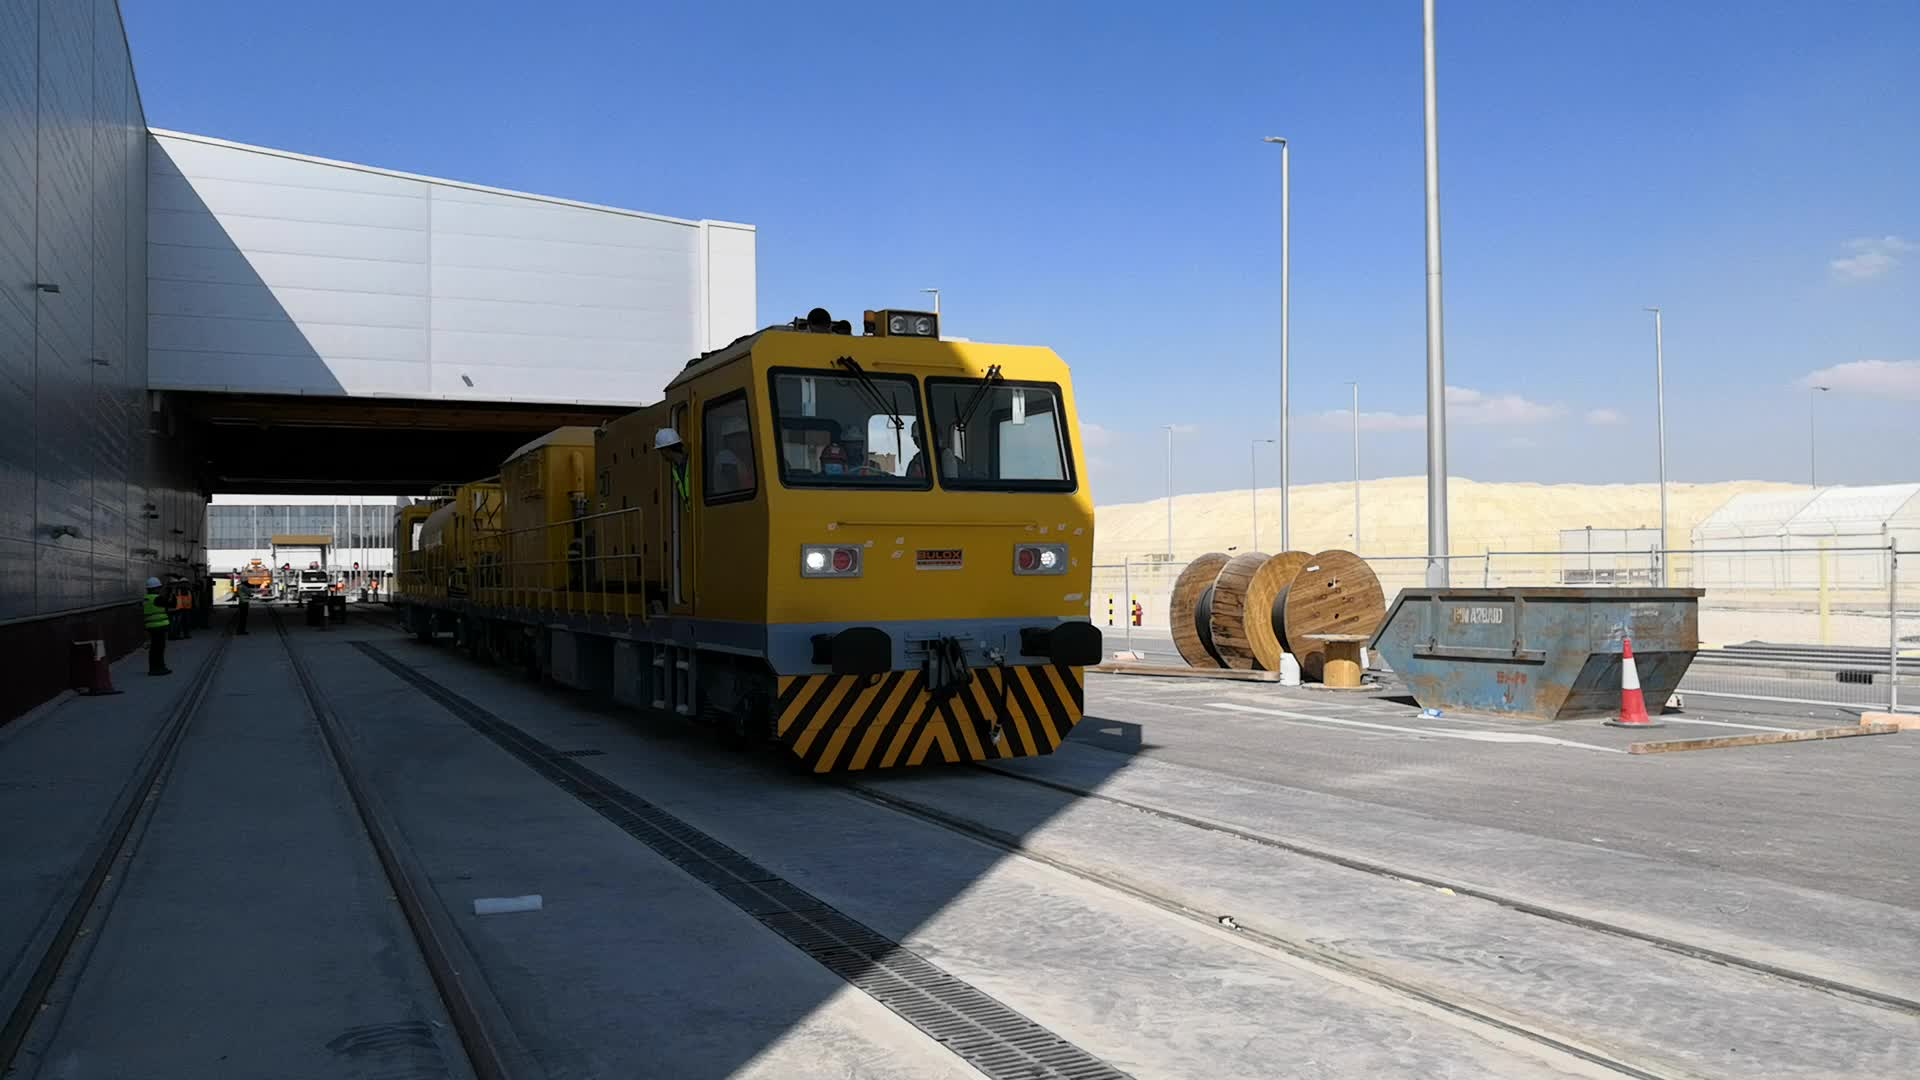 Railteco Customized Railway Tunnel Cleaning Vehicle